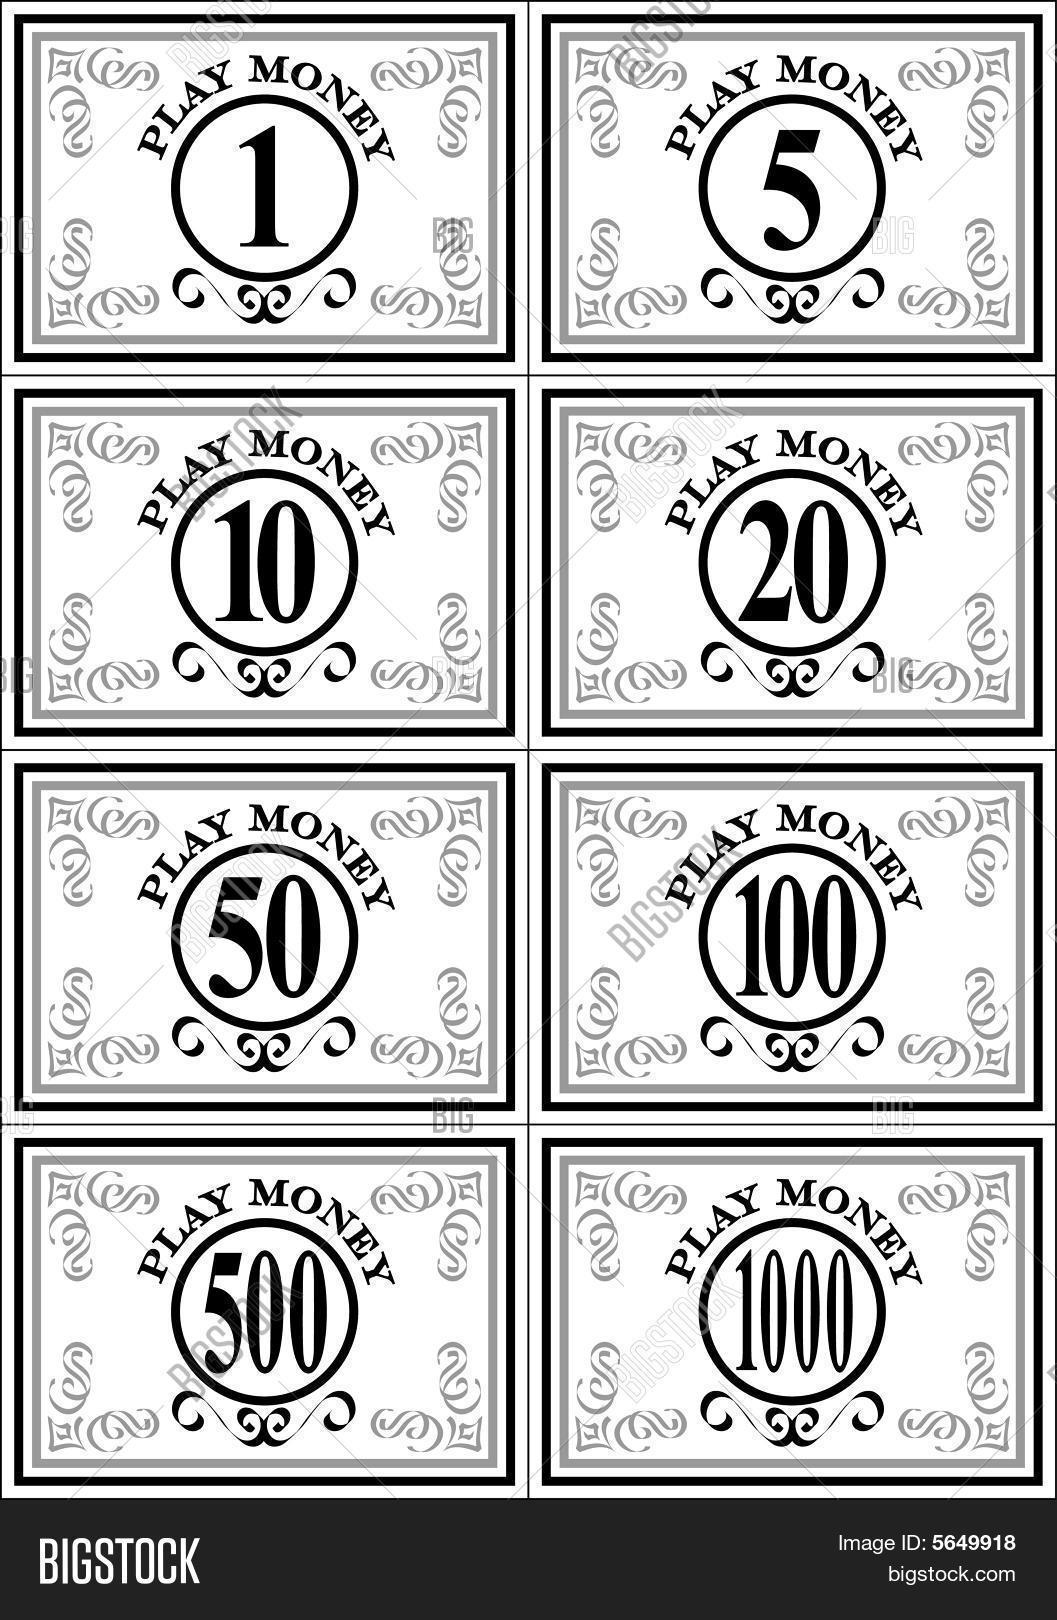 Printable Monopoly Money Template Black And White